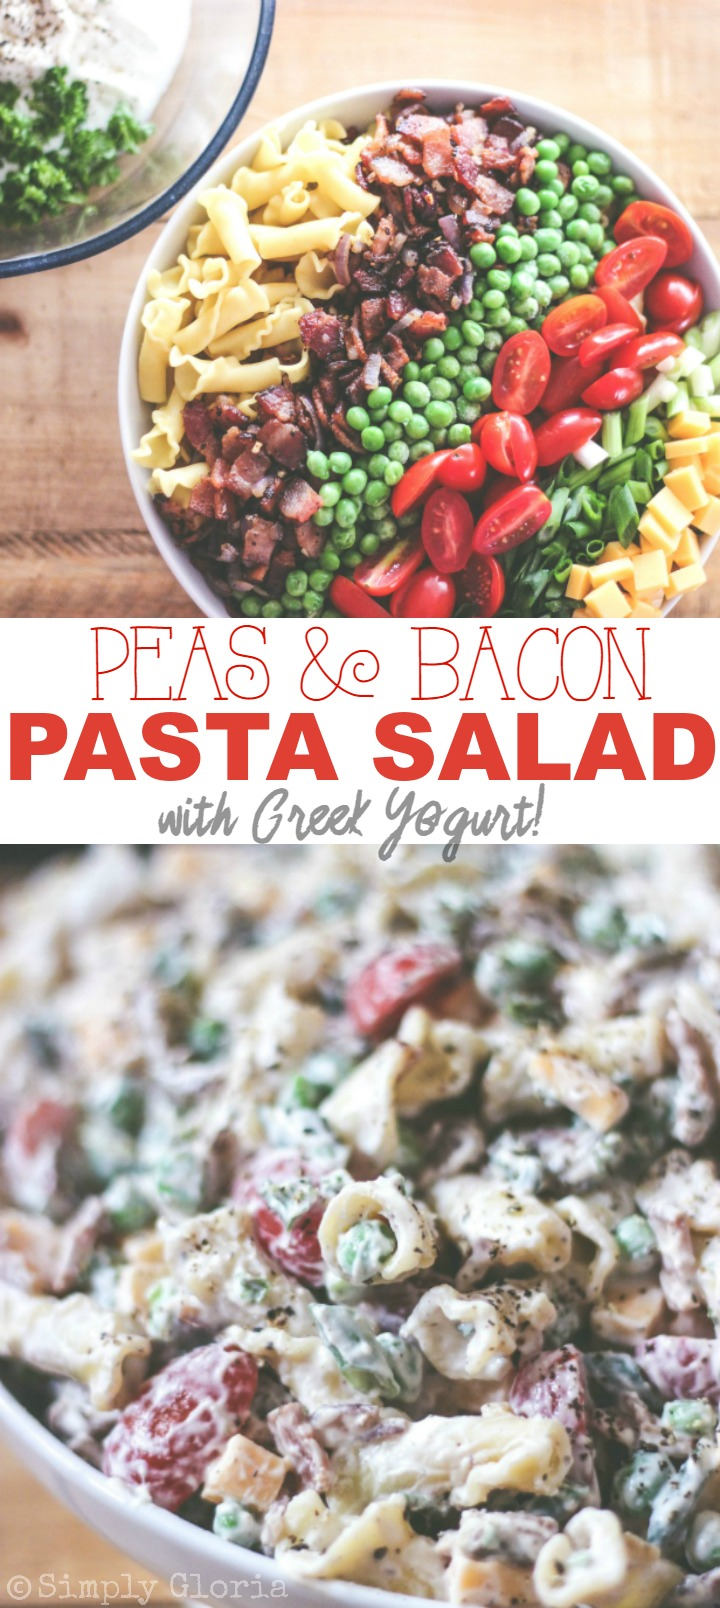 Peas and Bacon Pasta Salad with Greek Yogurt! Bring this to your next summer gathering!